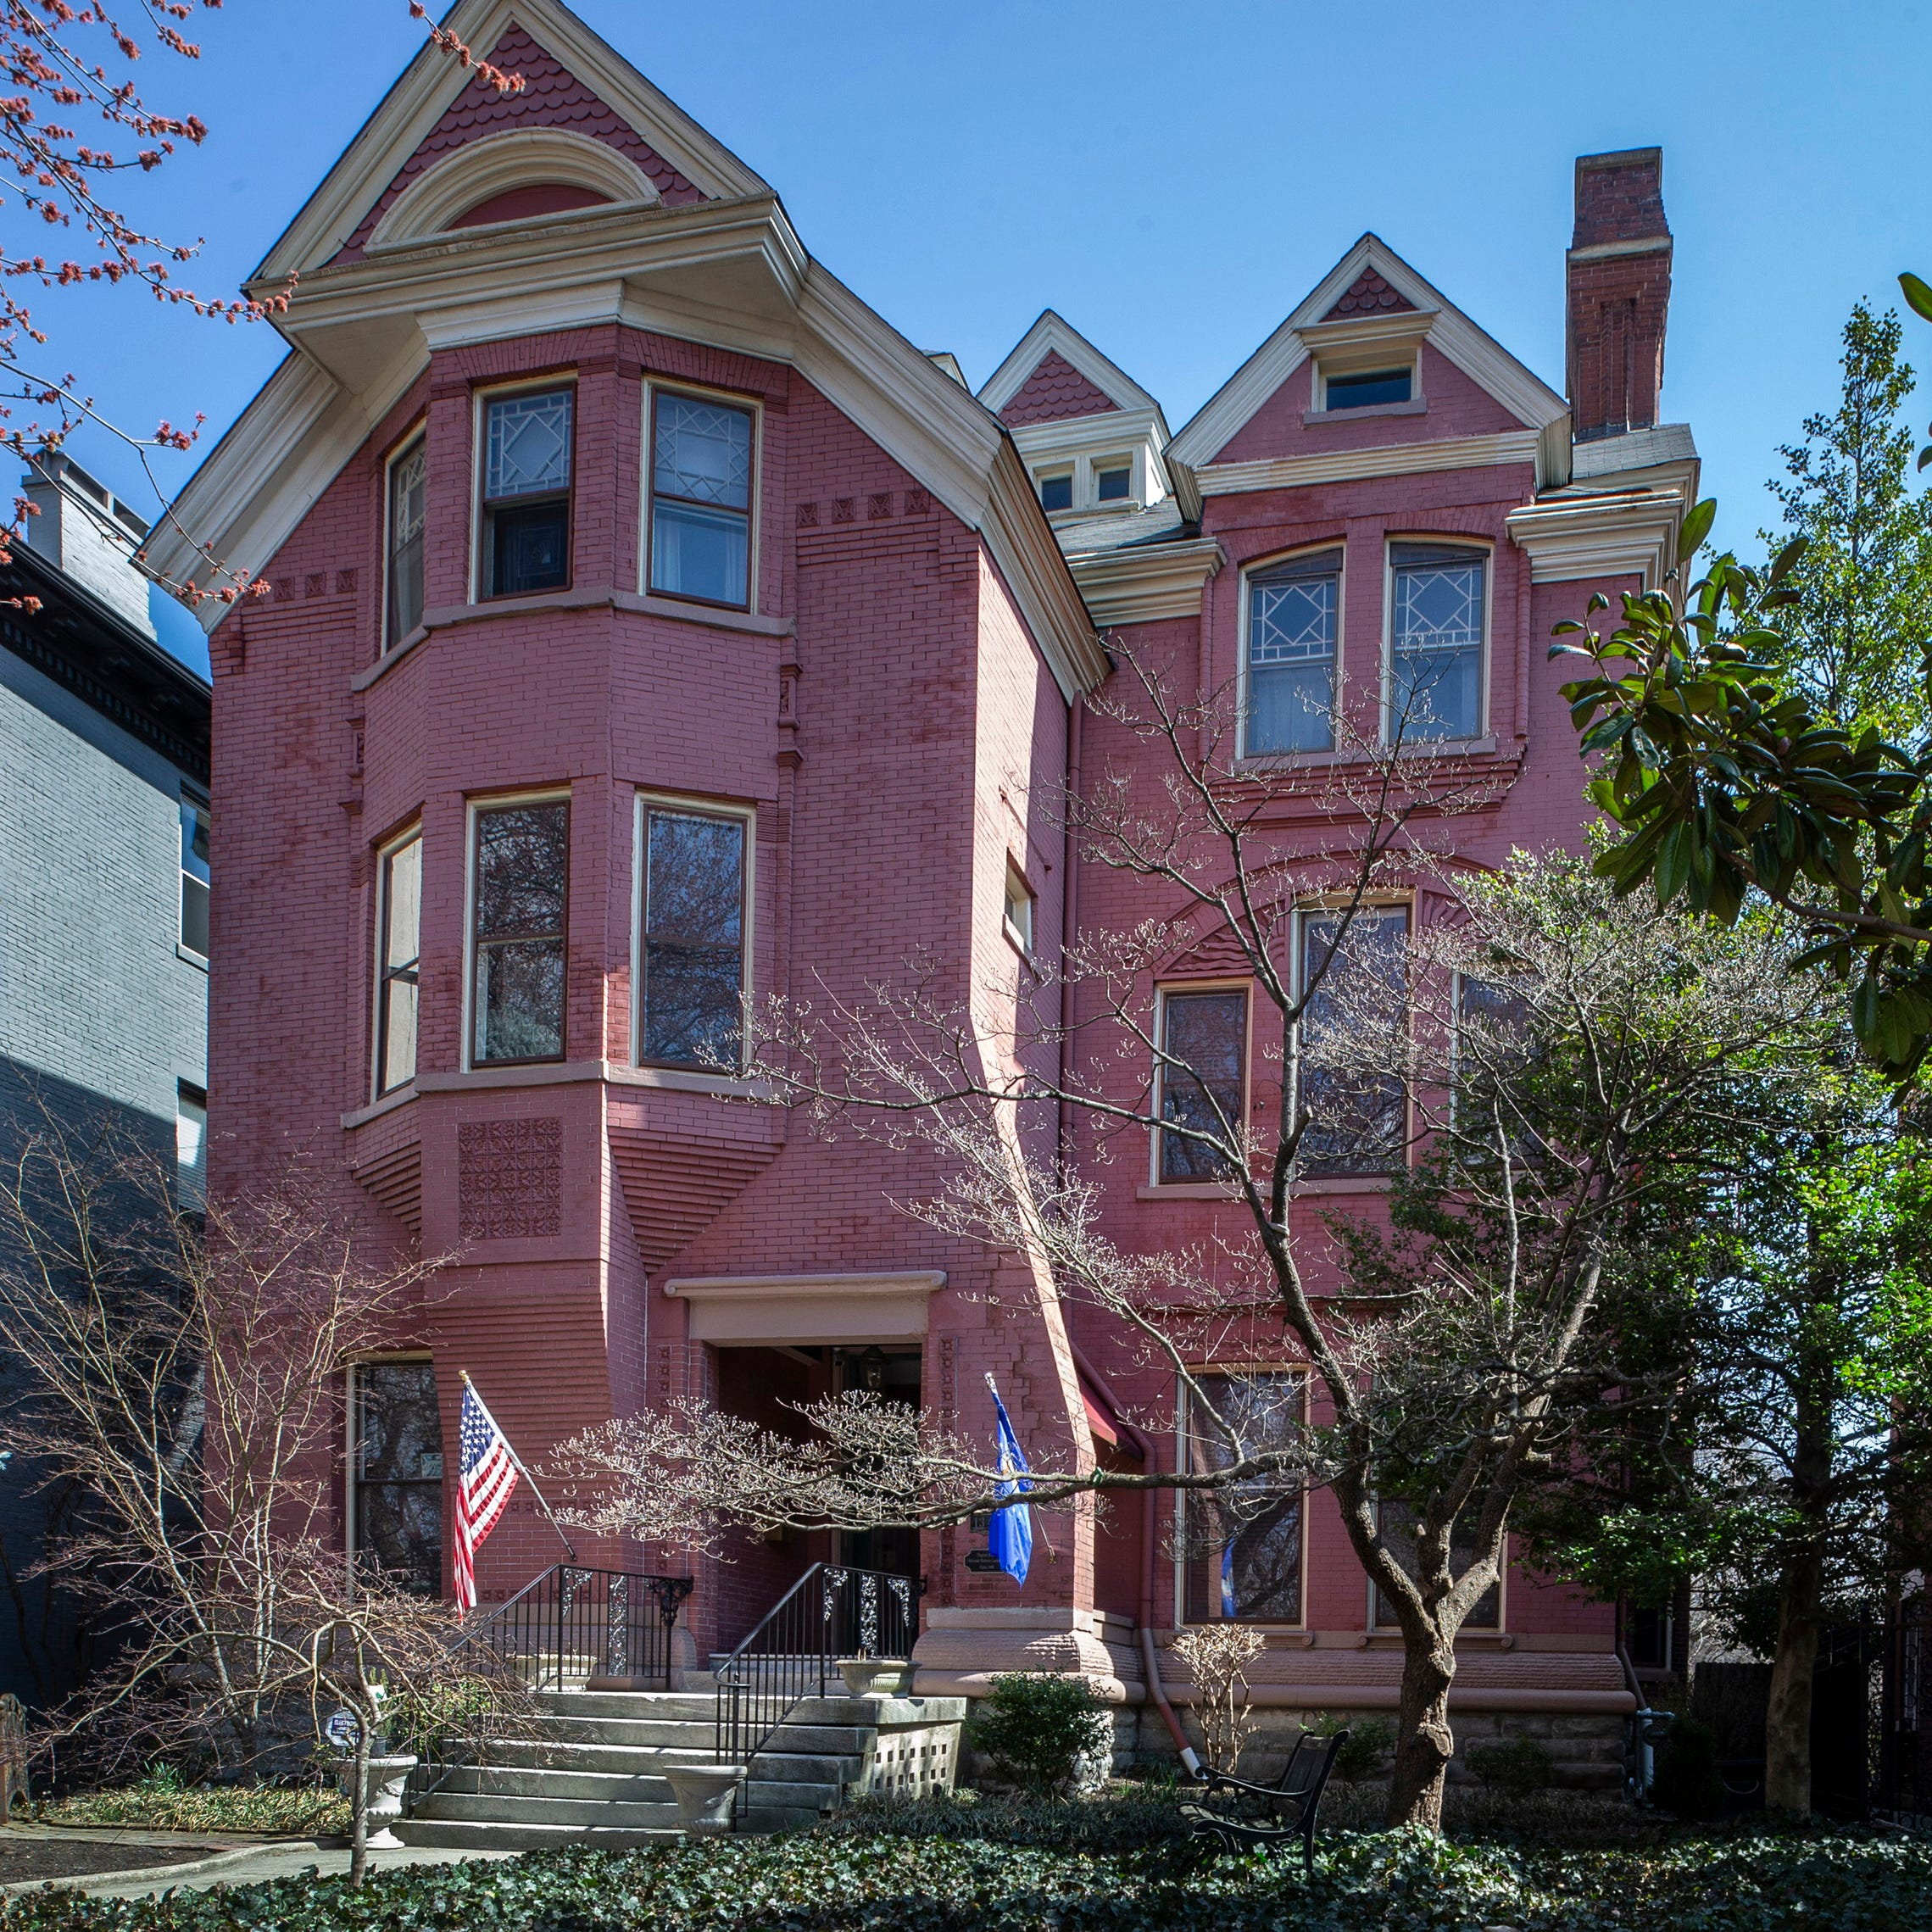 How you can tour this historic 8,000+ square foot Louisville mansion